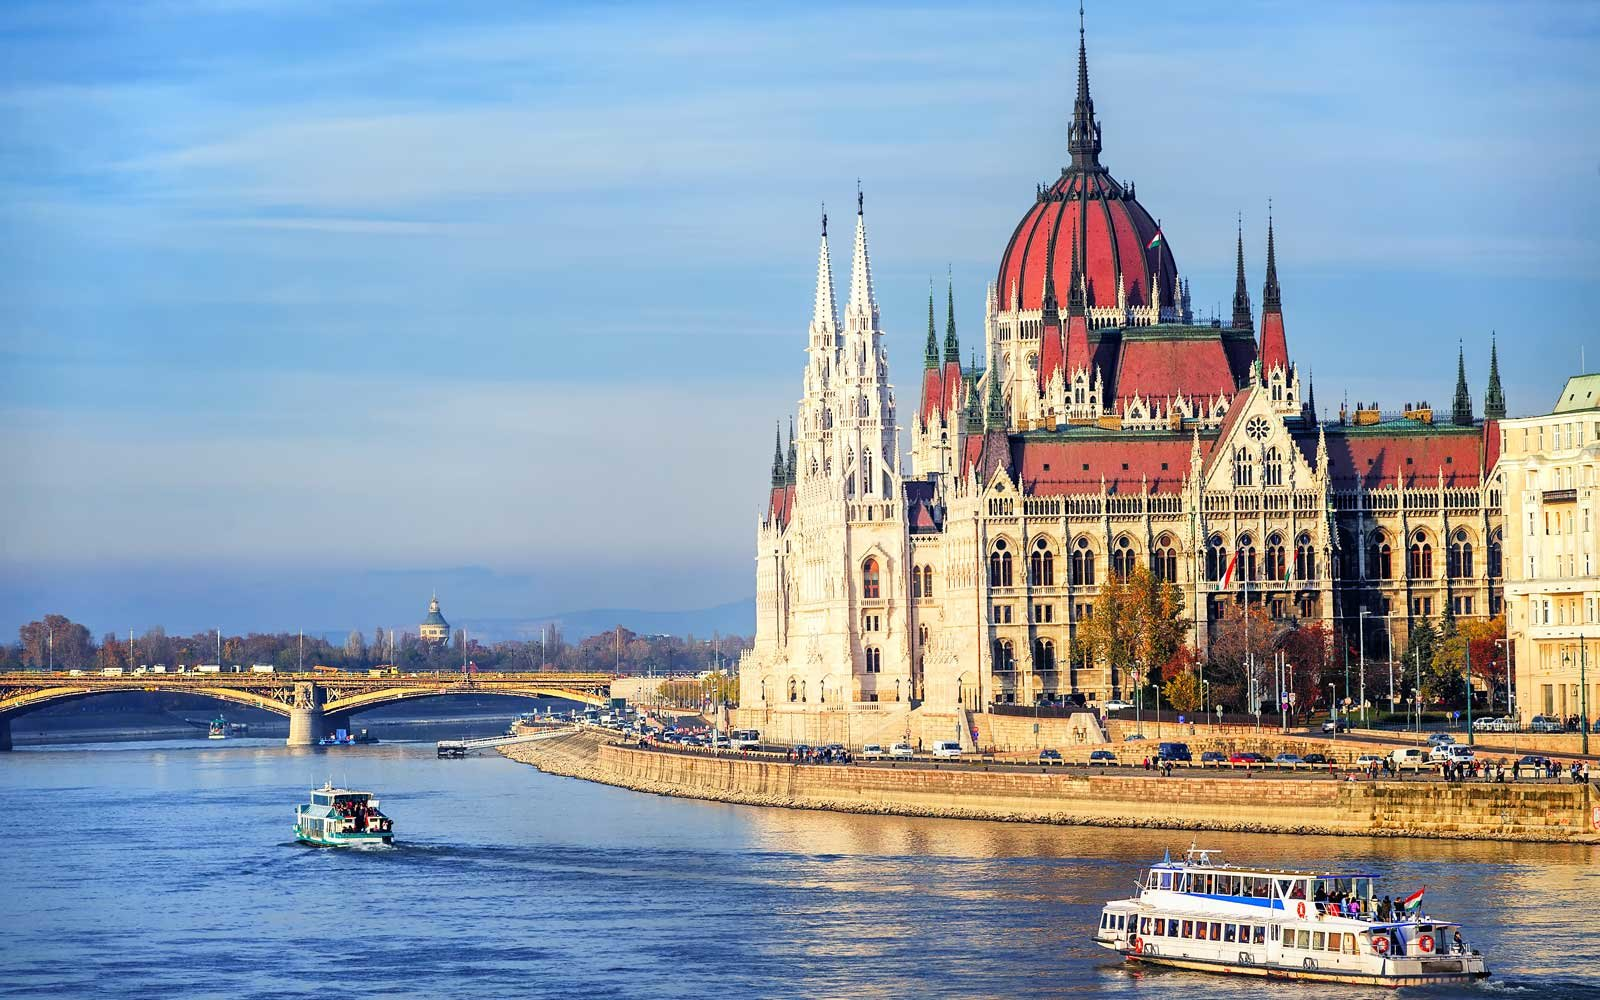 A group trip on a cruise down the Danube River gives you a relaxing way to enjoy spectacular scenery.